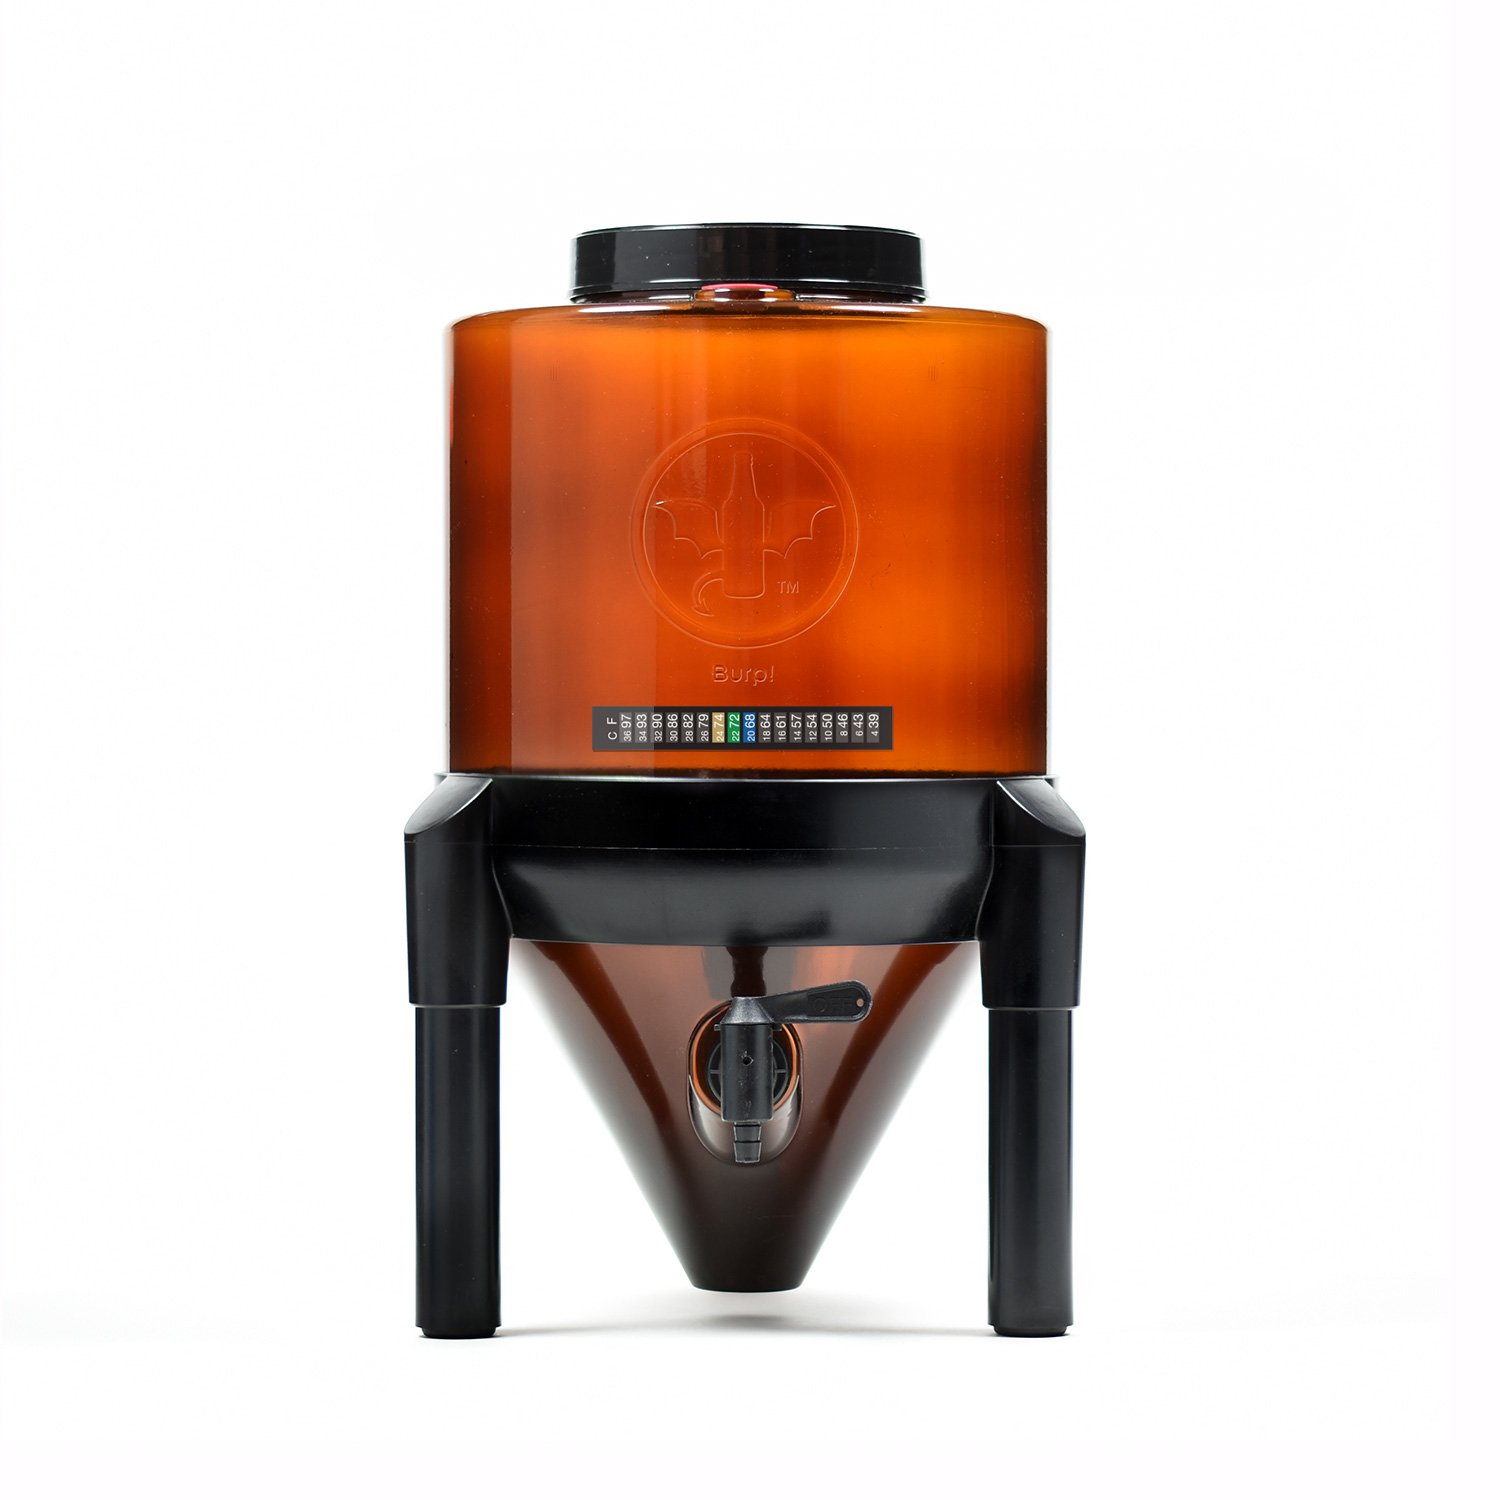 BrewDemon Craft Beer Brewing Kit by Demon Brewing Company - NO SIPHON HOSE OR AIRLOCK REQUIRED Easy To Use Craft Beer Starter Kit With Reusable Conical Fermenter, Equipment and Ingredients - Make Wick by BrewDemon (Image #2)